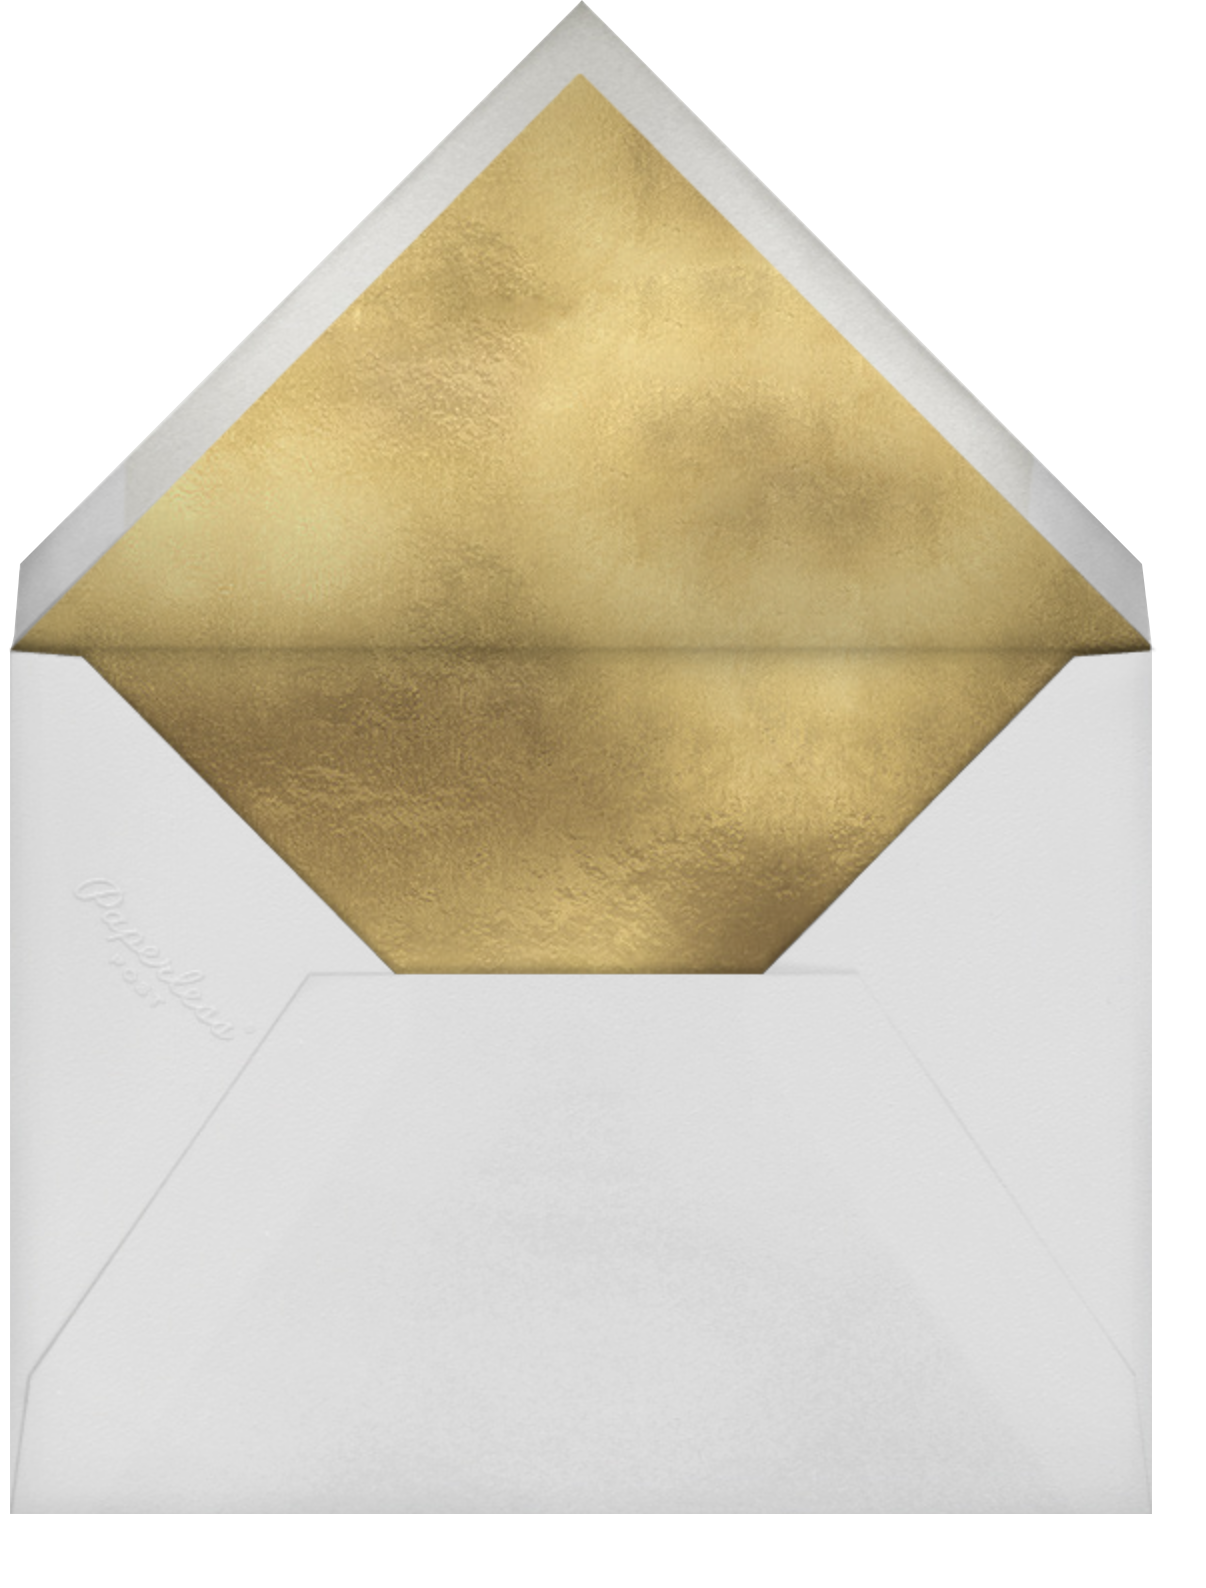 Milestone Moment - Paperless Post - Milestone  - envelope back